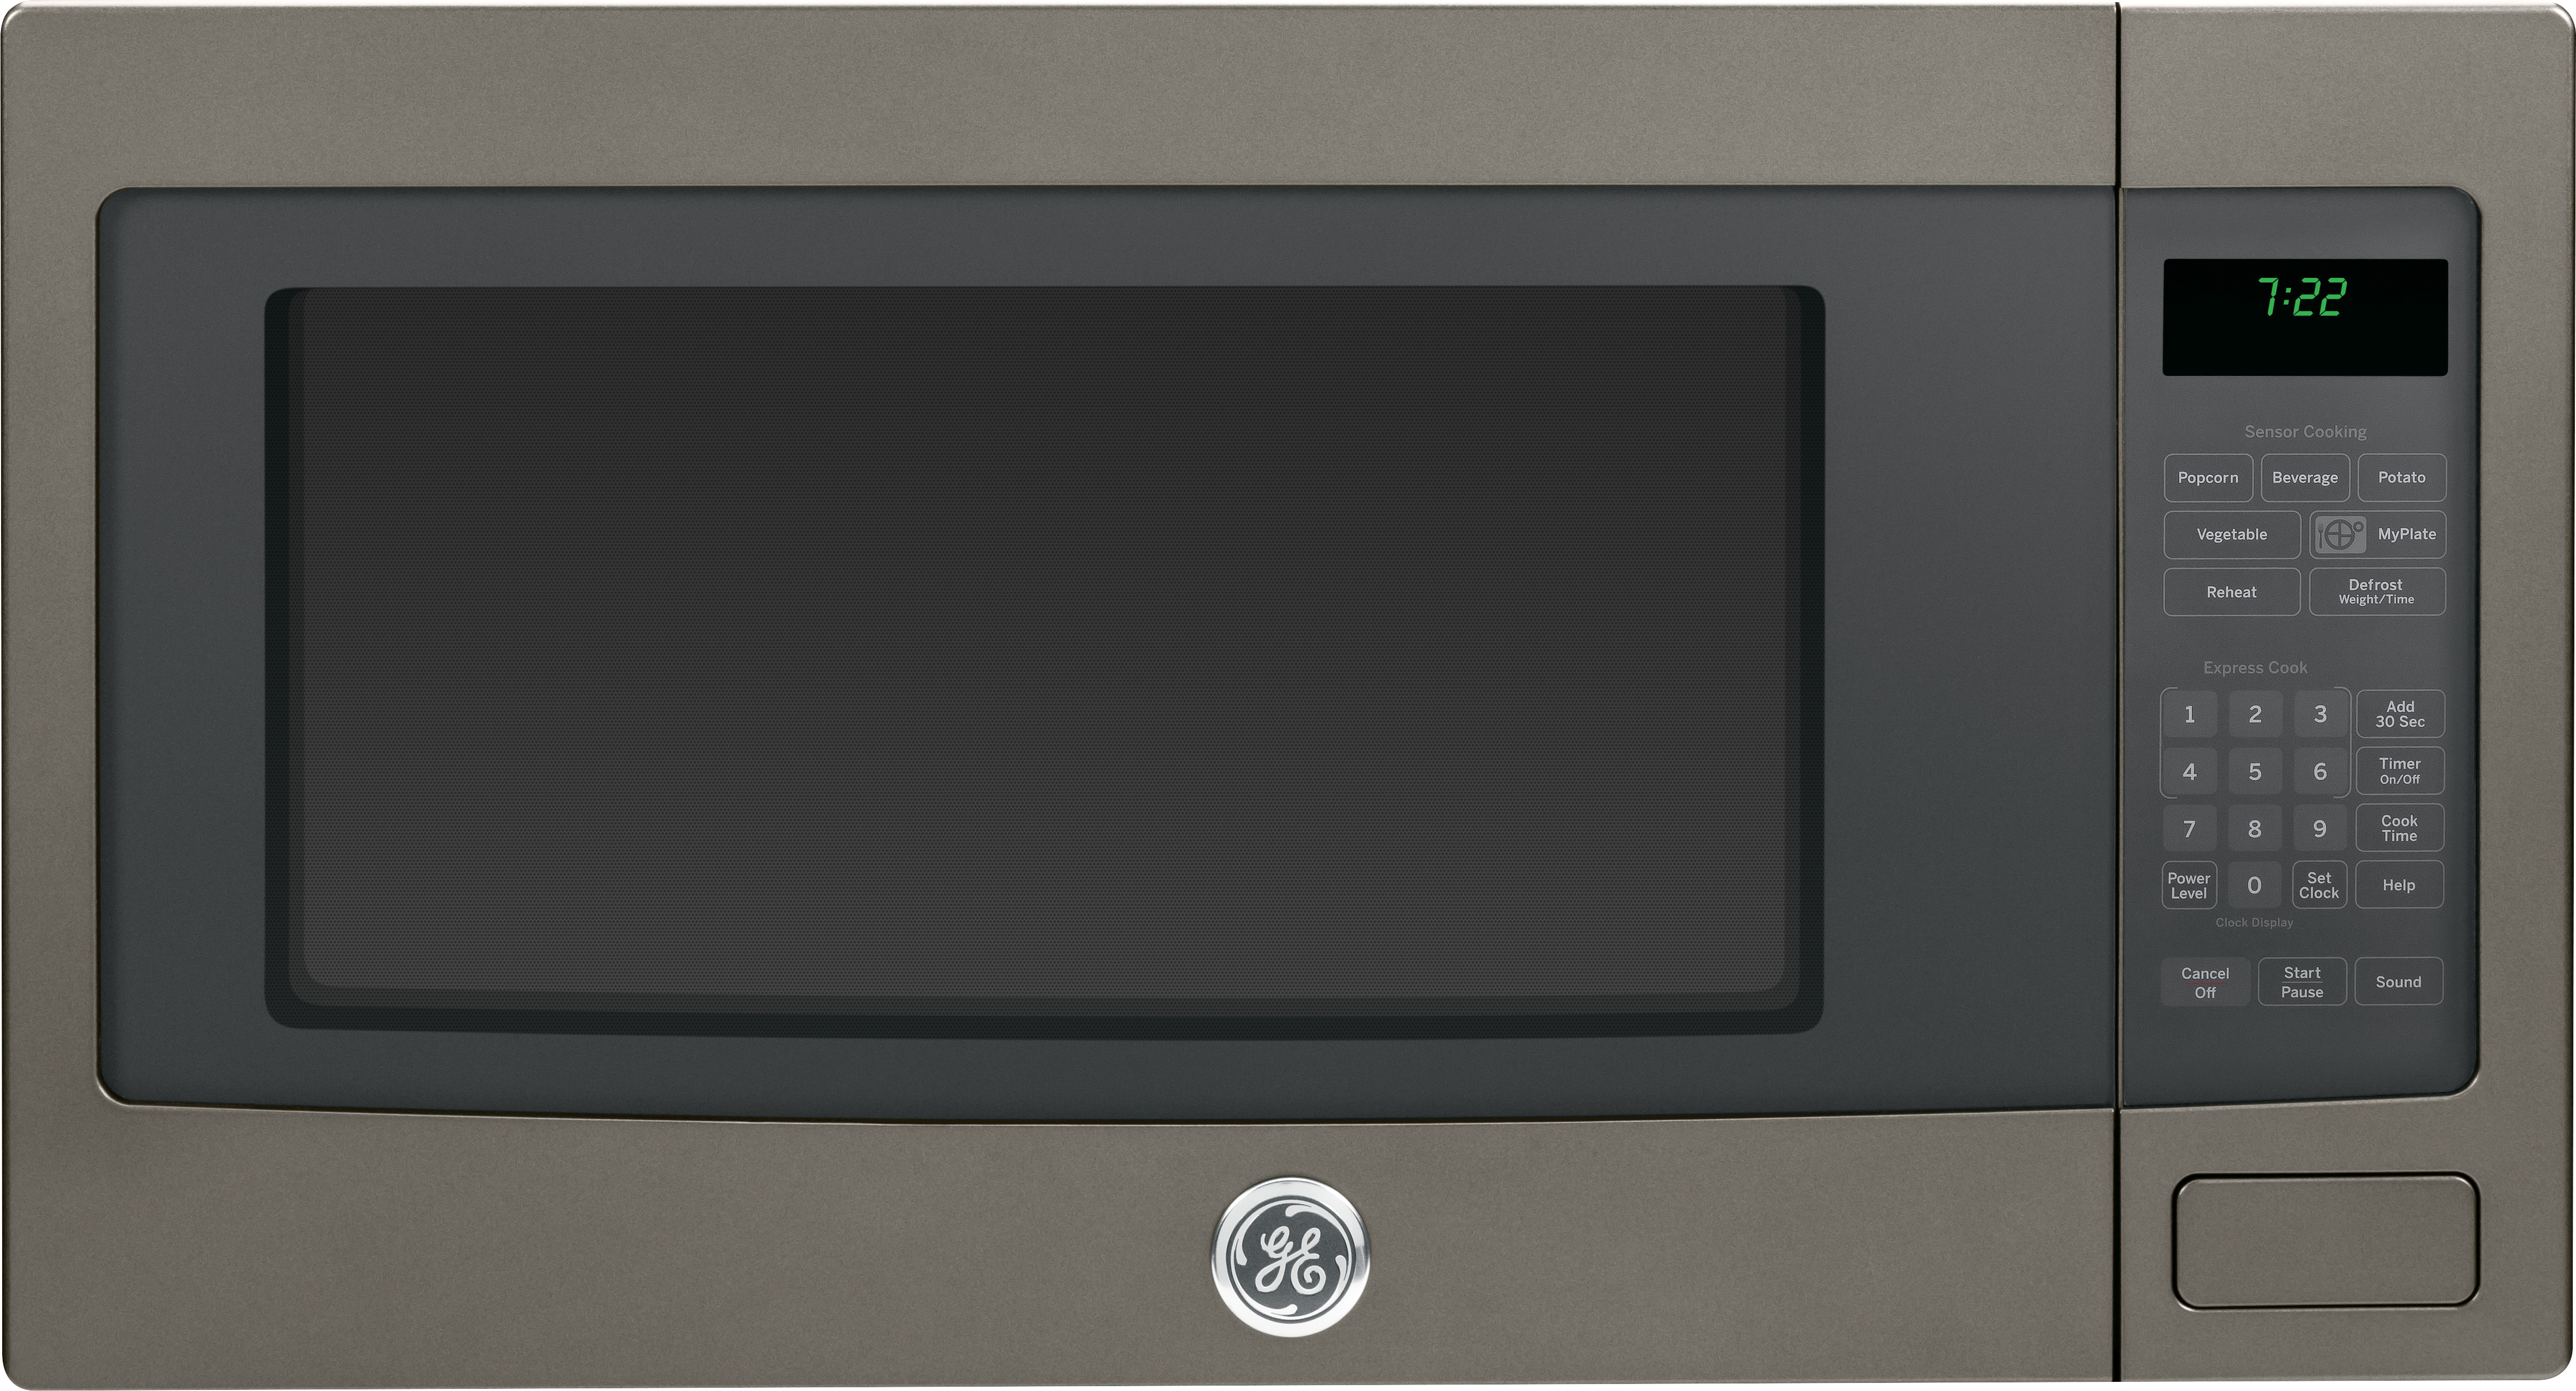 Kitchen appliances in slate color - Ge Profile Wall Oven In Slate